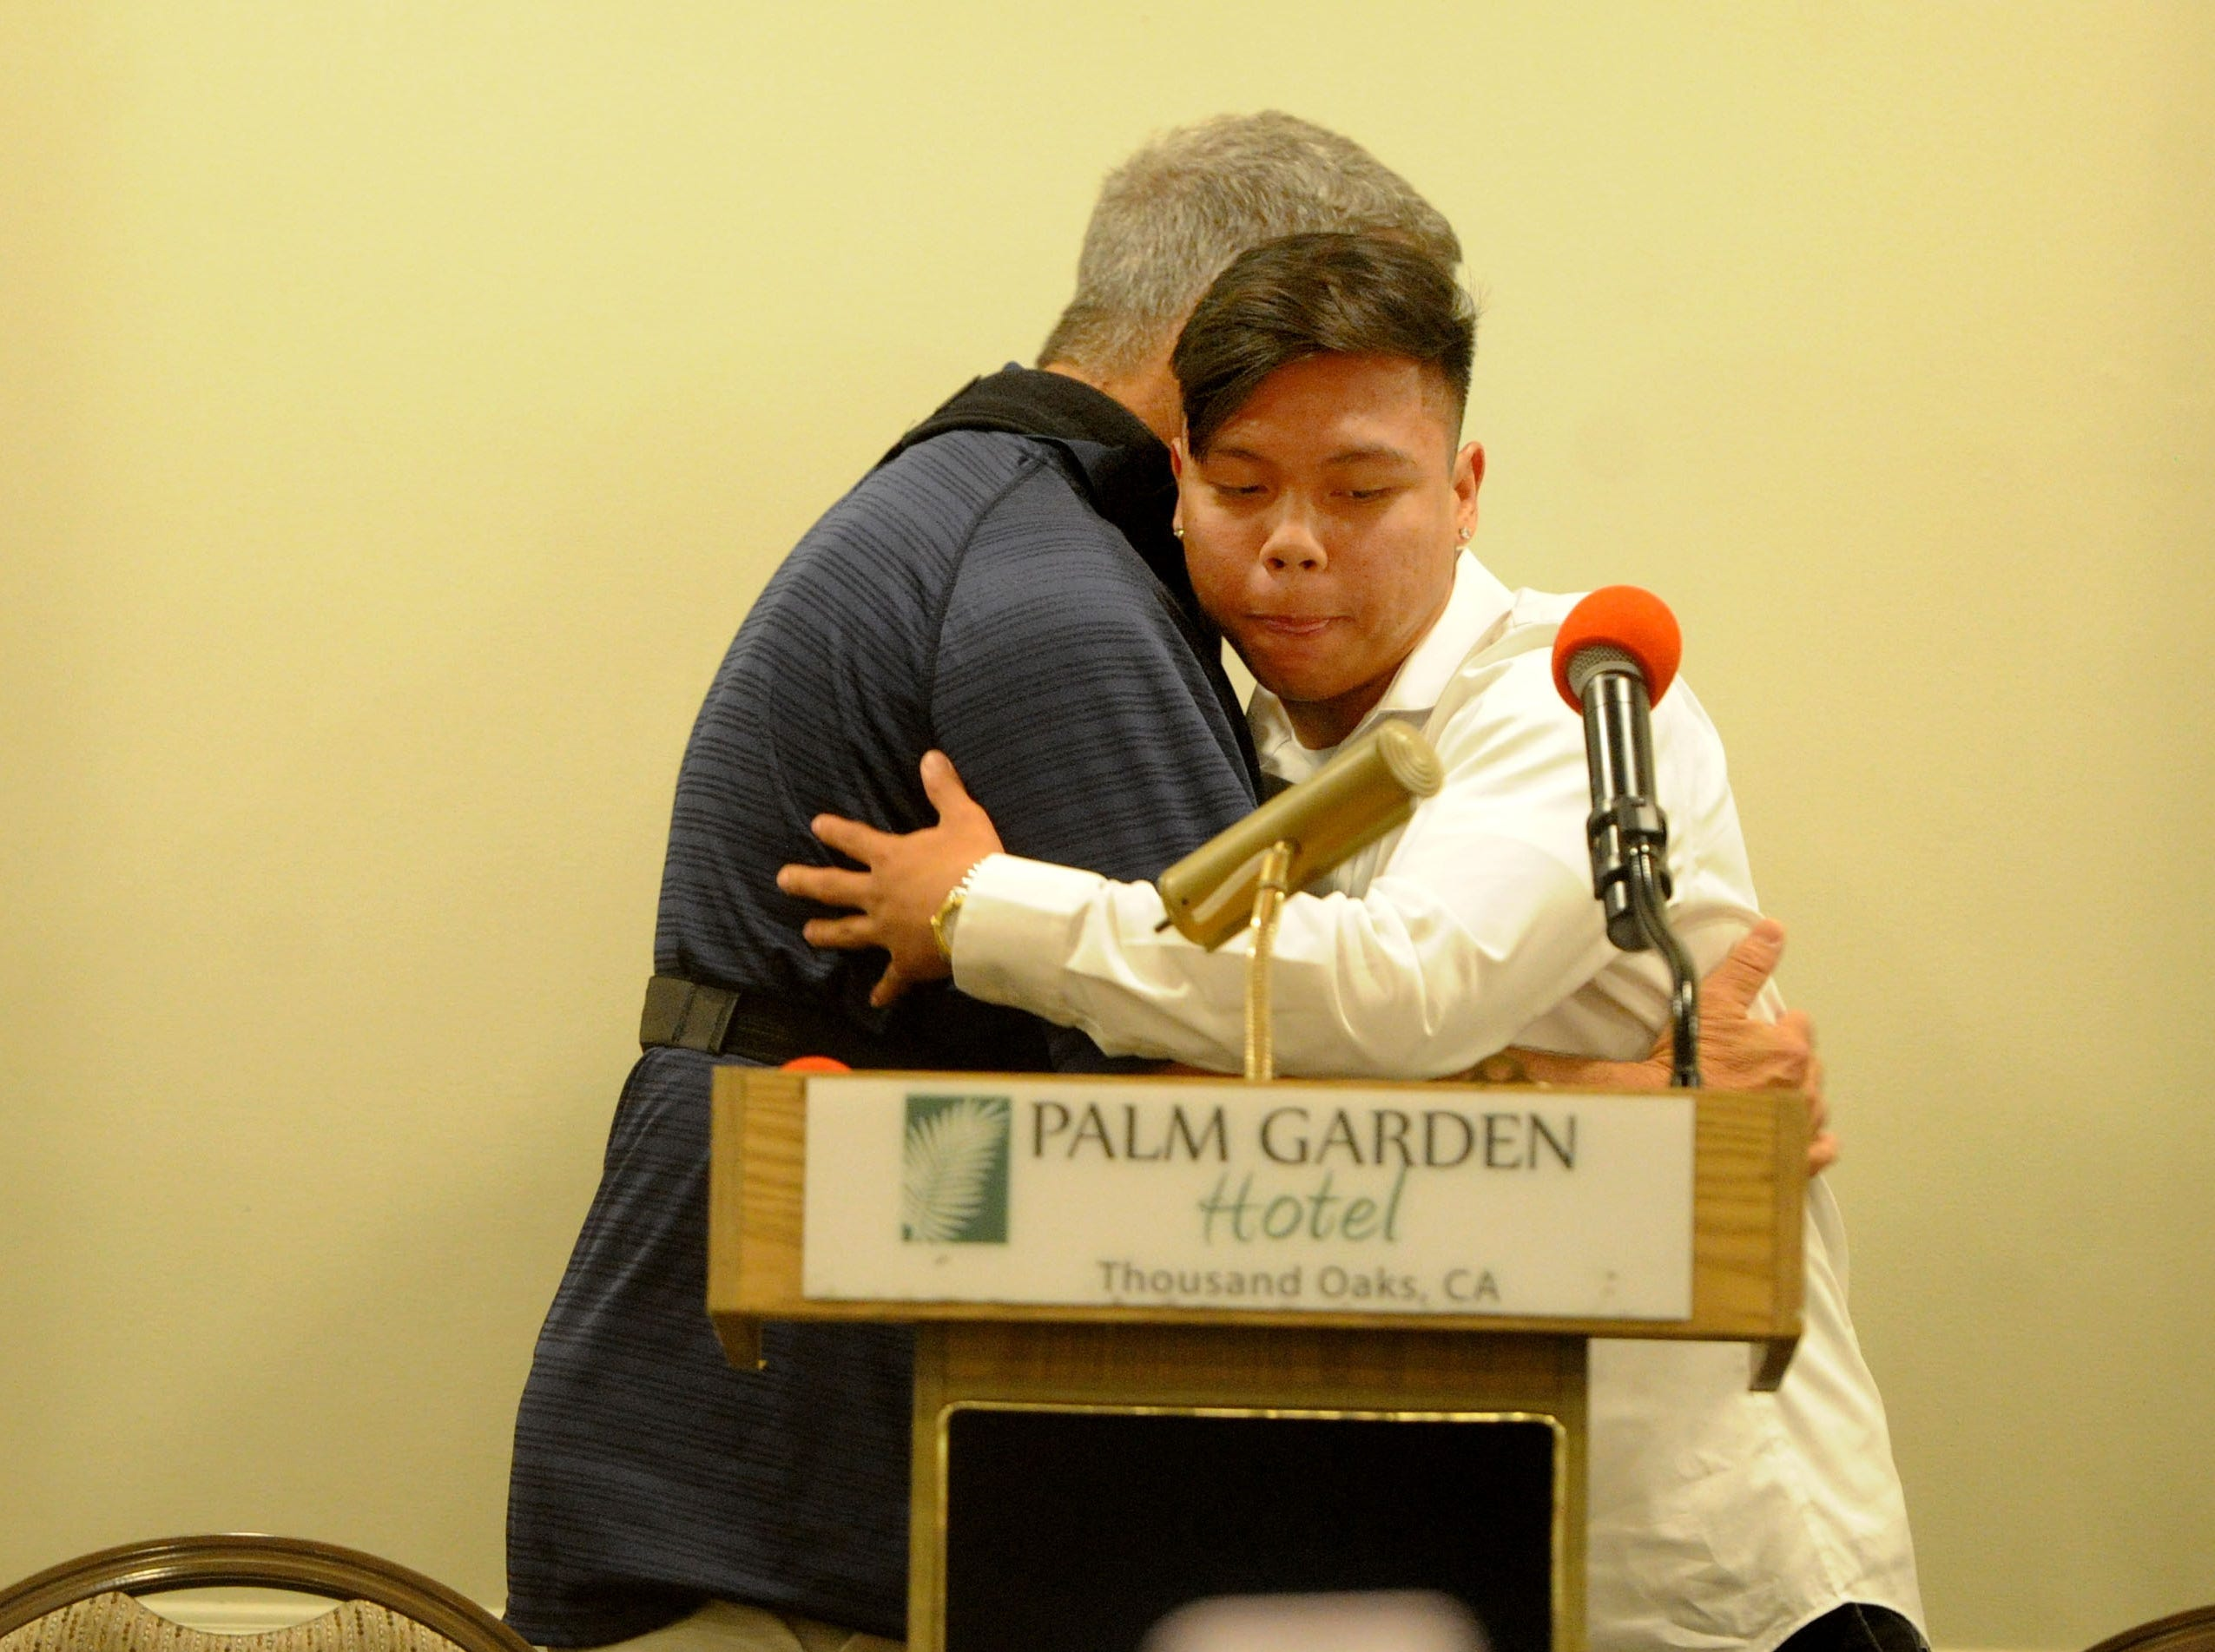 Camarillo High head coach Jack Willard, left, hugs Izaiah Lazaro during the Ventura County coaches' annual signing day banquet at the Palm Garden Hotel in Newbury Park on Wednesday. Lazaro will play at Whittier College.